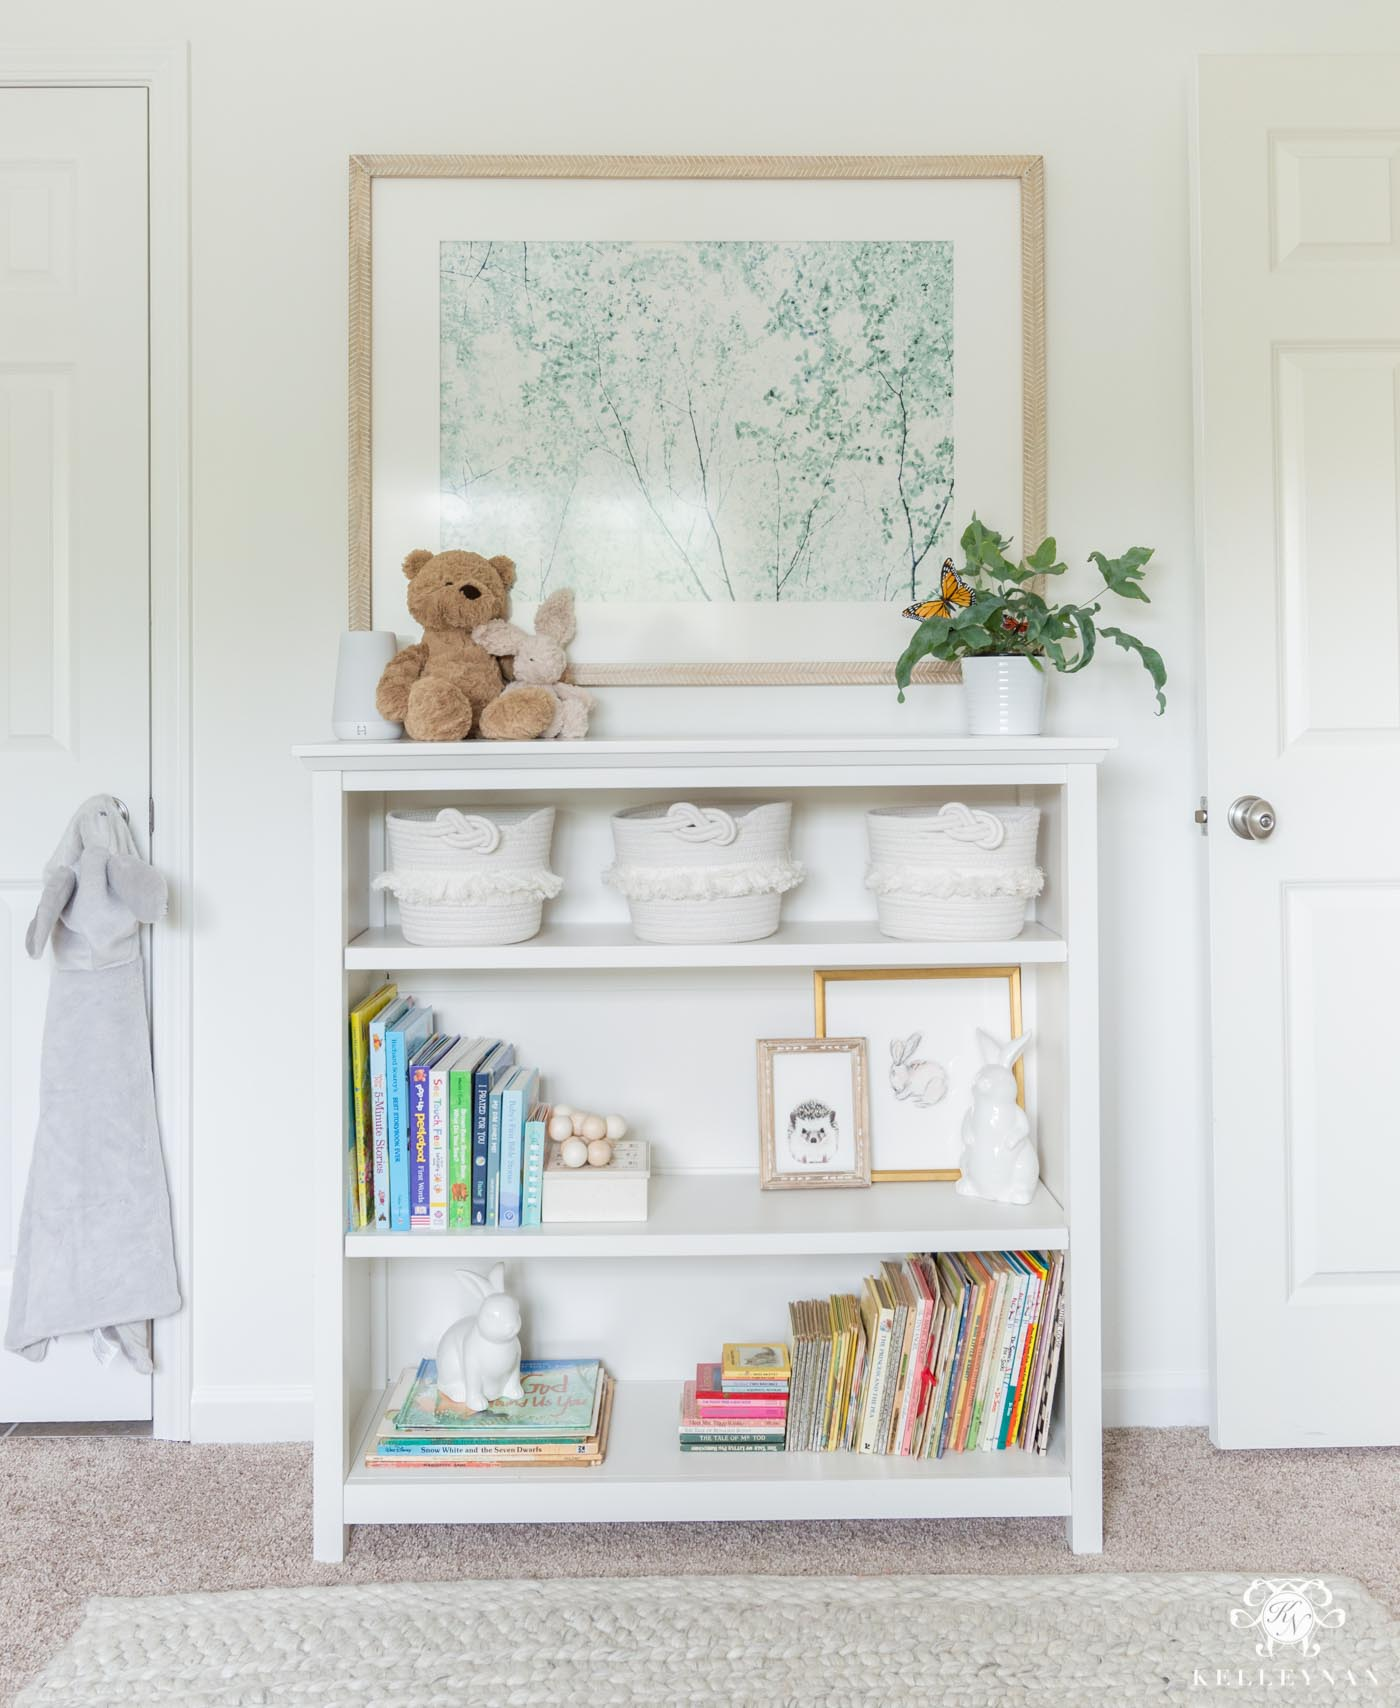 Gender neutral nursery styled bookcase with books and toys